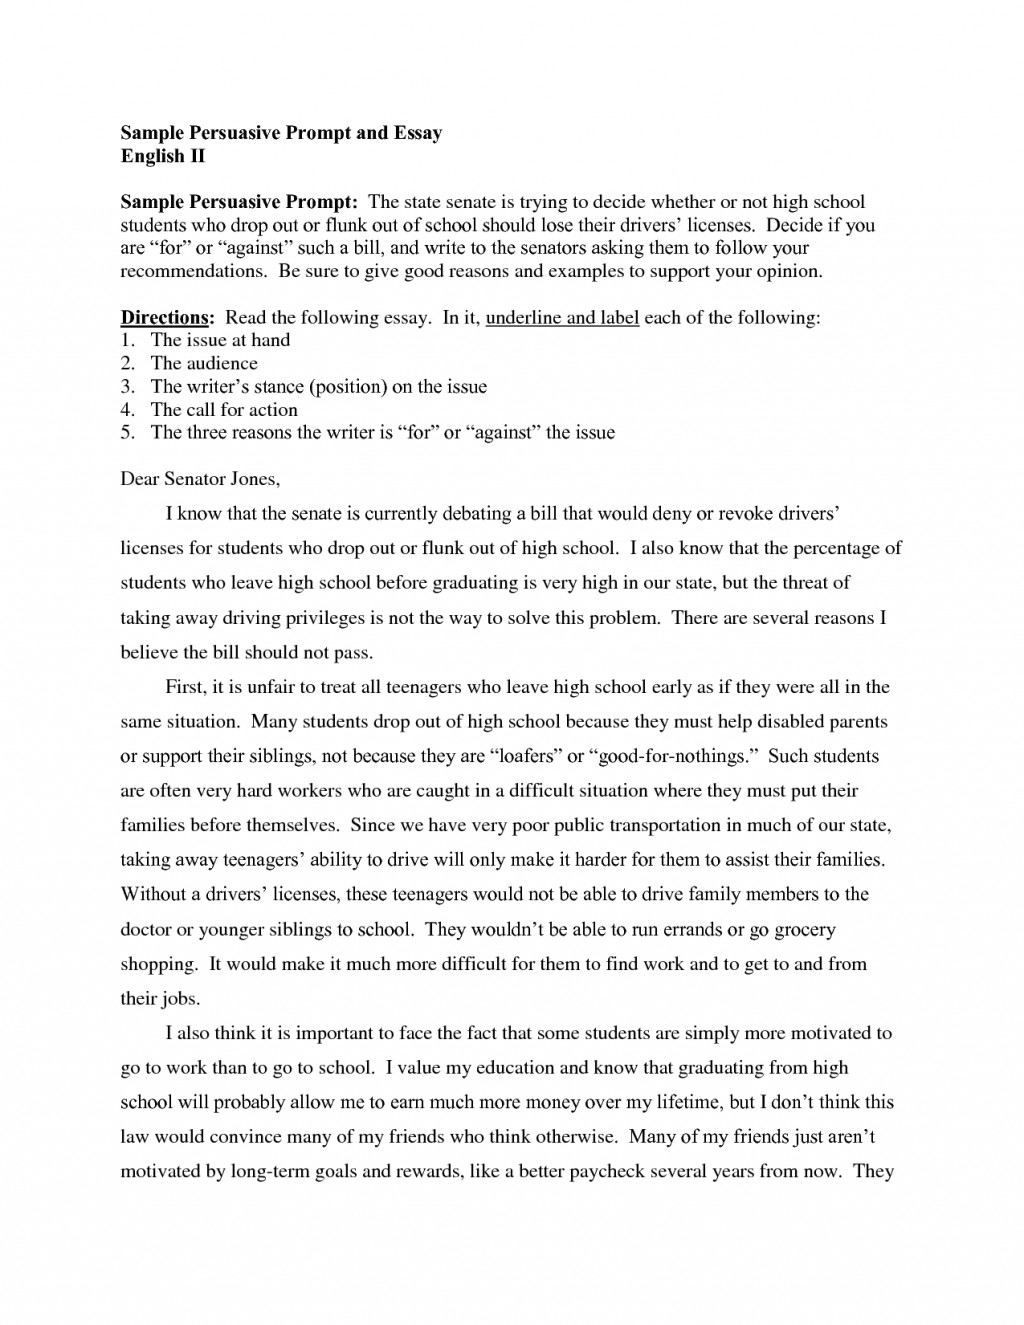 013 Research Paper Easy Topic Persuasive Essay Topics For High School Sample Ideas Highschool Students Good Prompt Funny Fun List Of Seniors Writing English Sensational Questions Psychology Science Biology Large